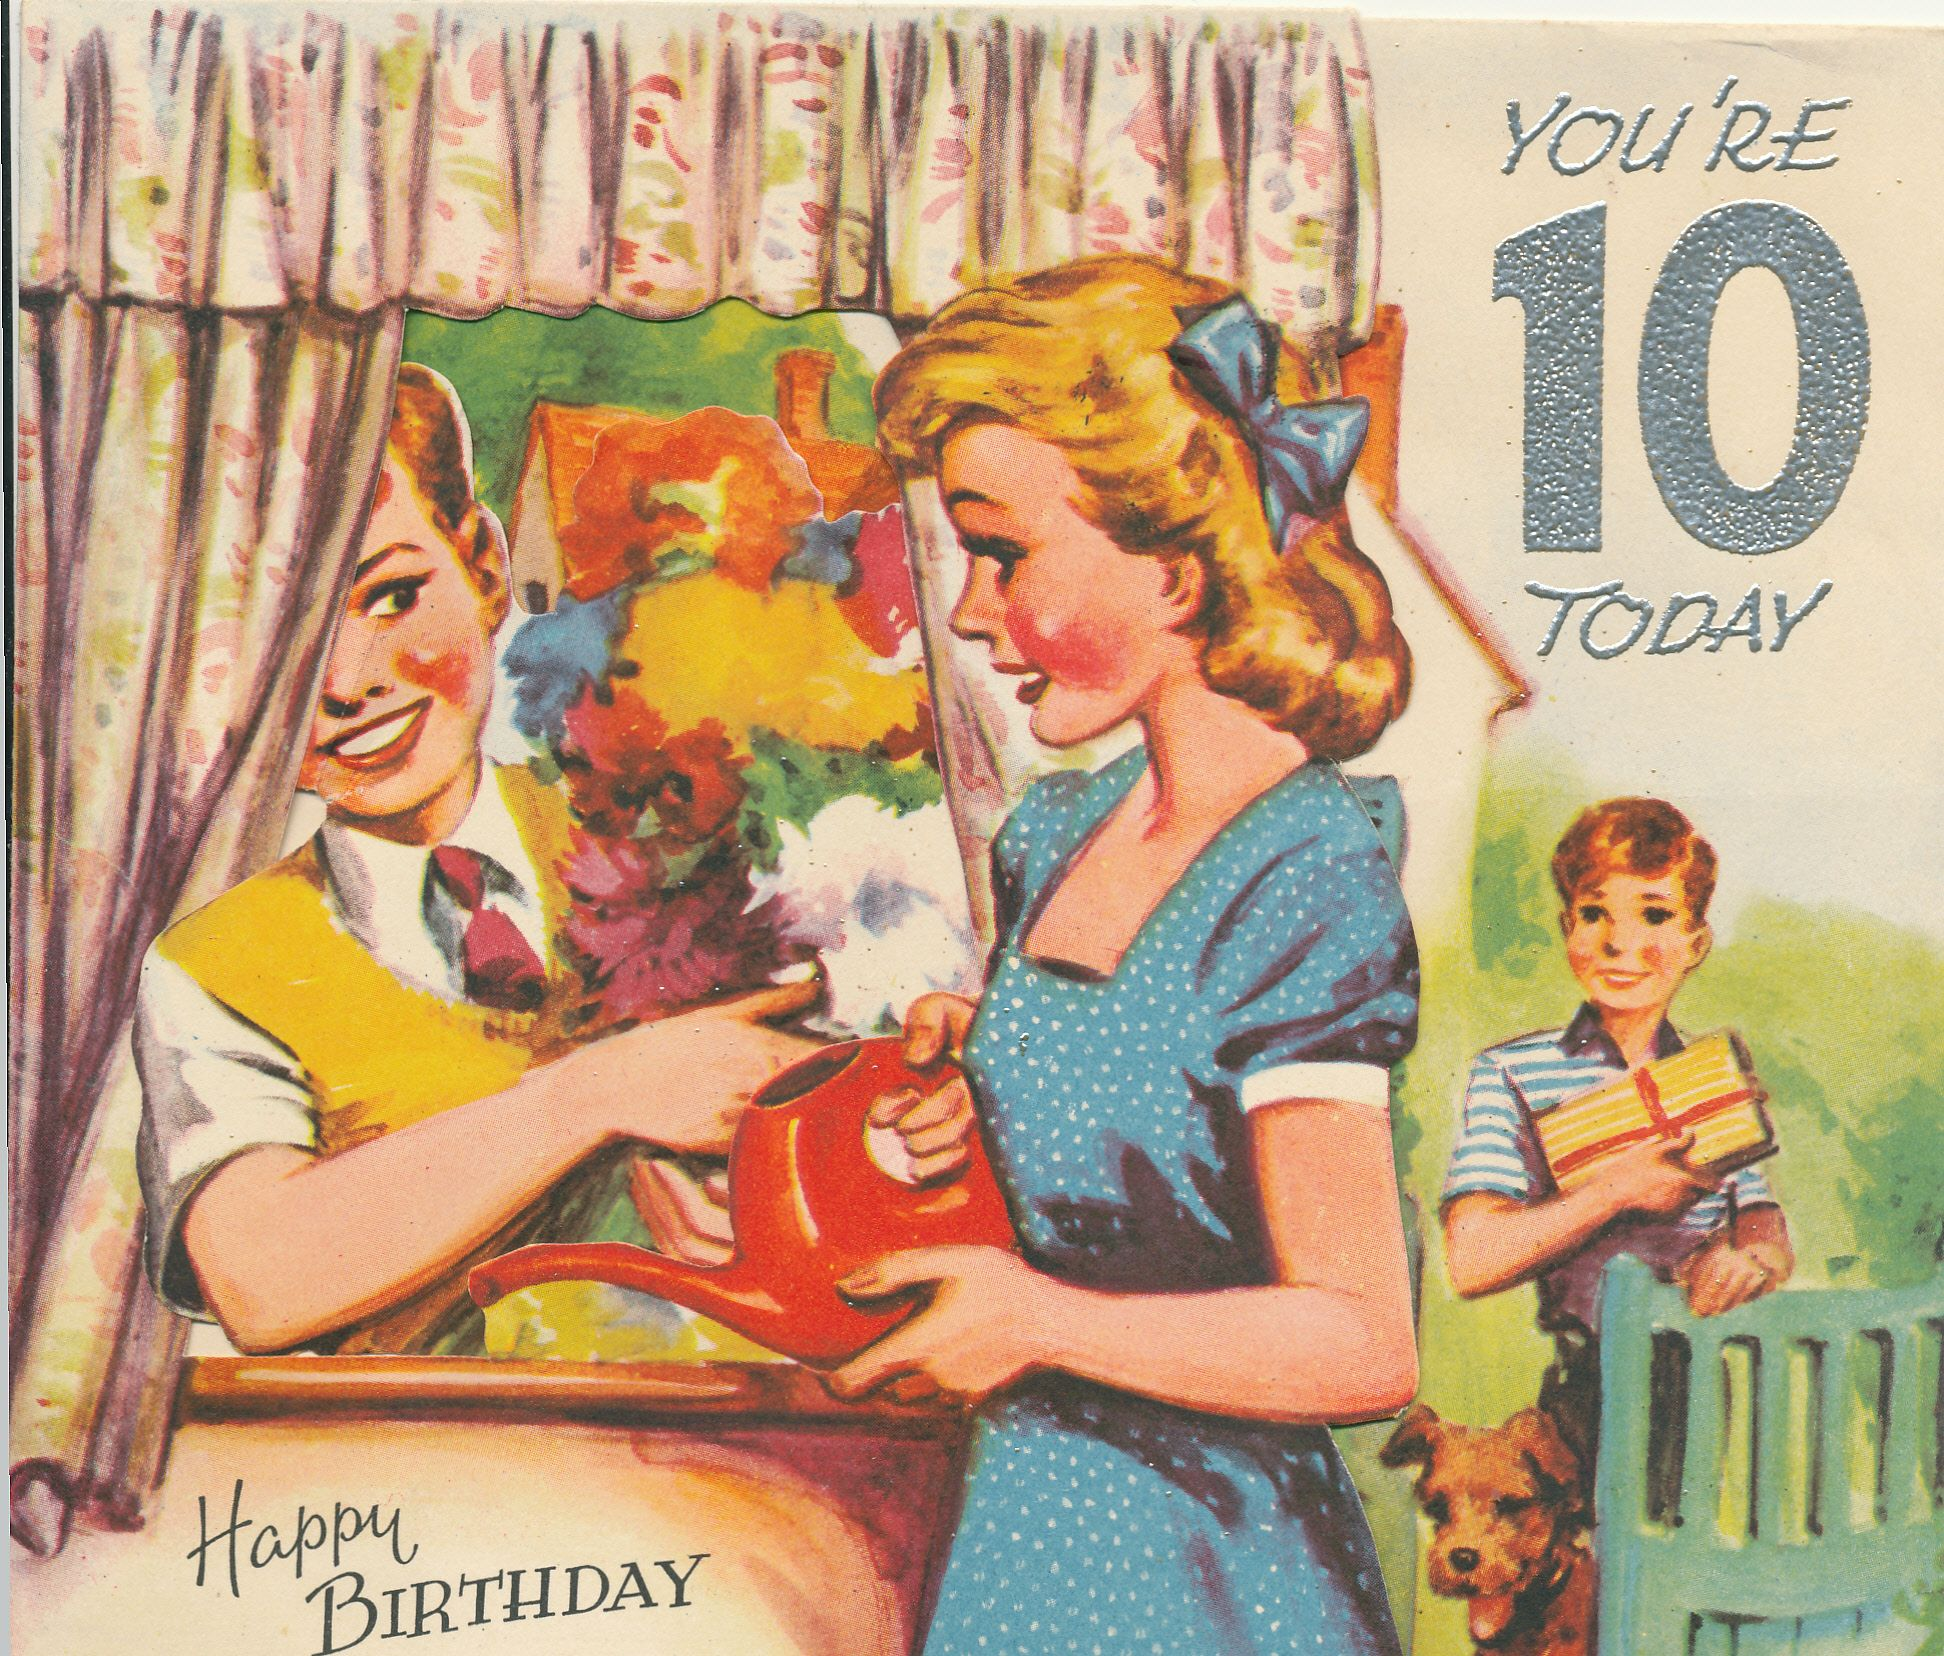 Birthday card for a 10 year old the boy pops into the window birthday card for a 10 year old the boy pops into the window greetings bookmarktalkfo Images